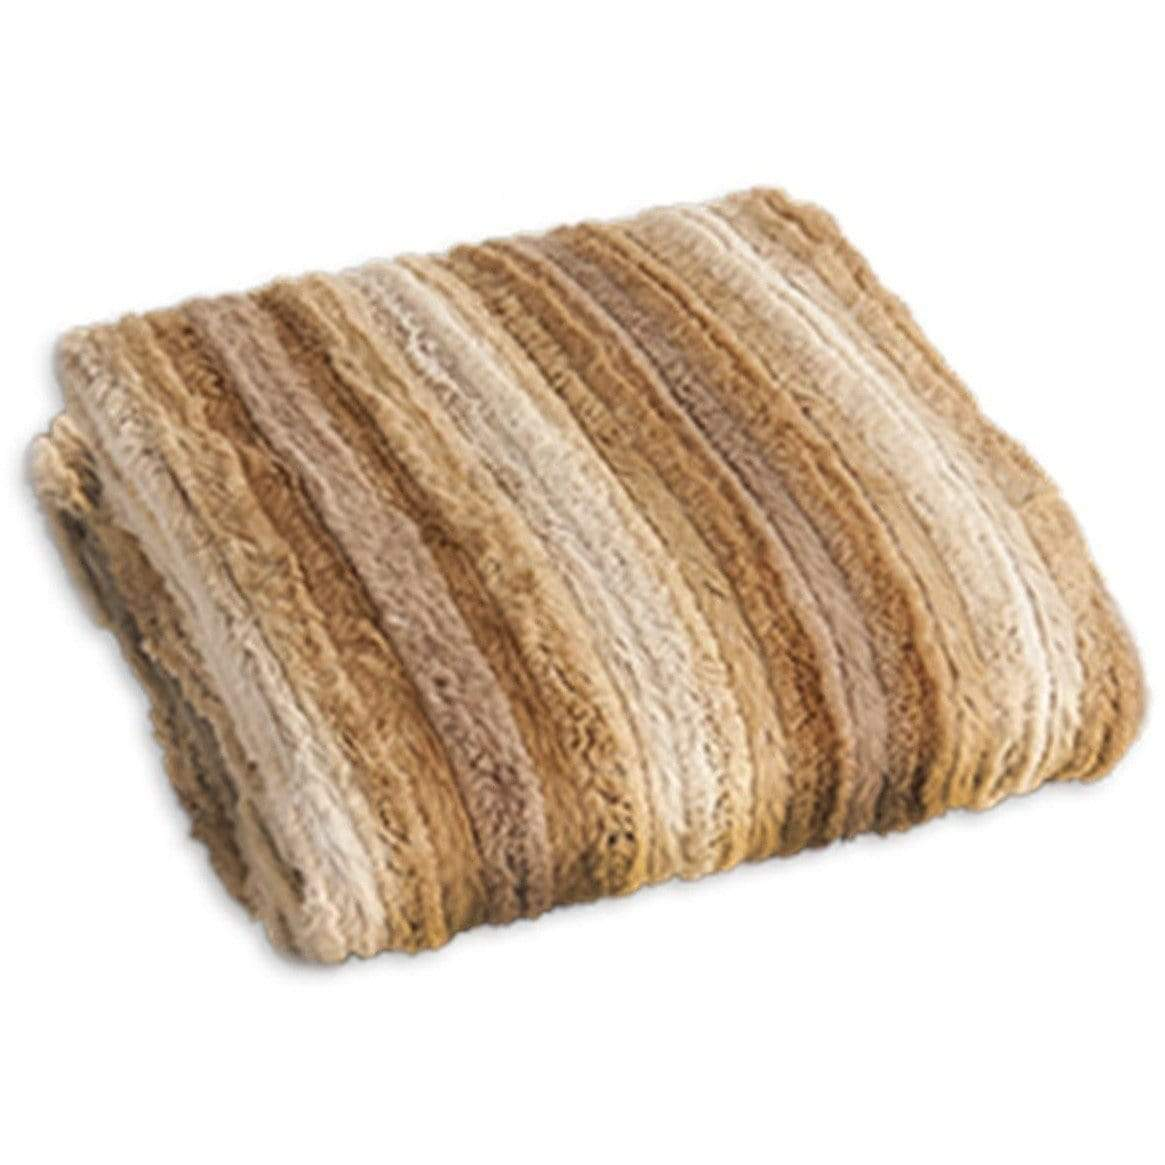 Camping Large Throw - Serene Sequoia